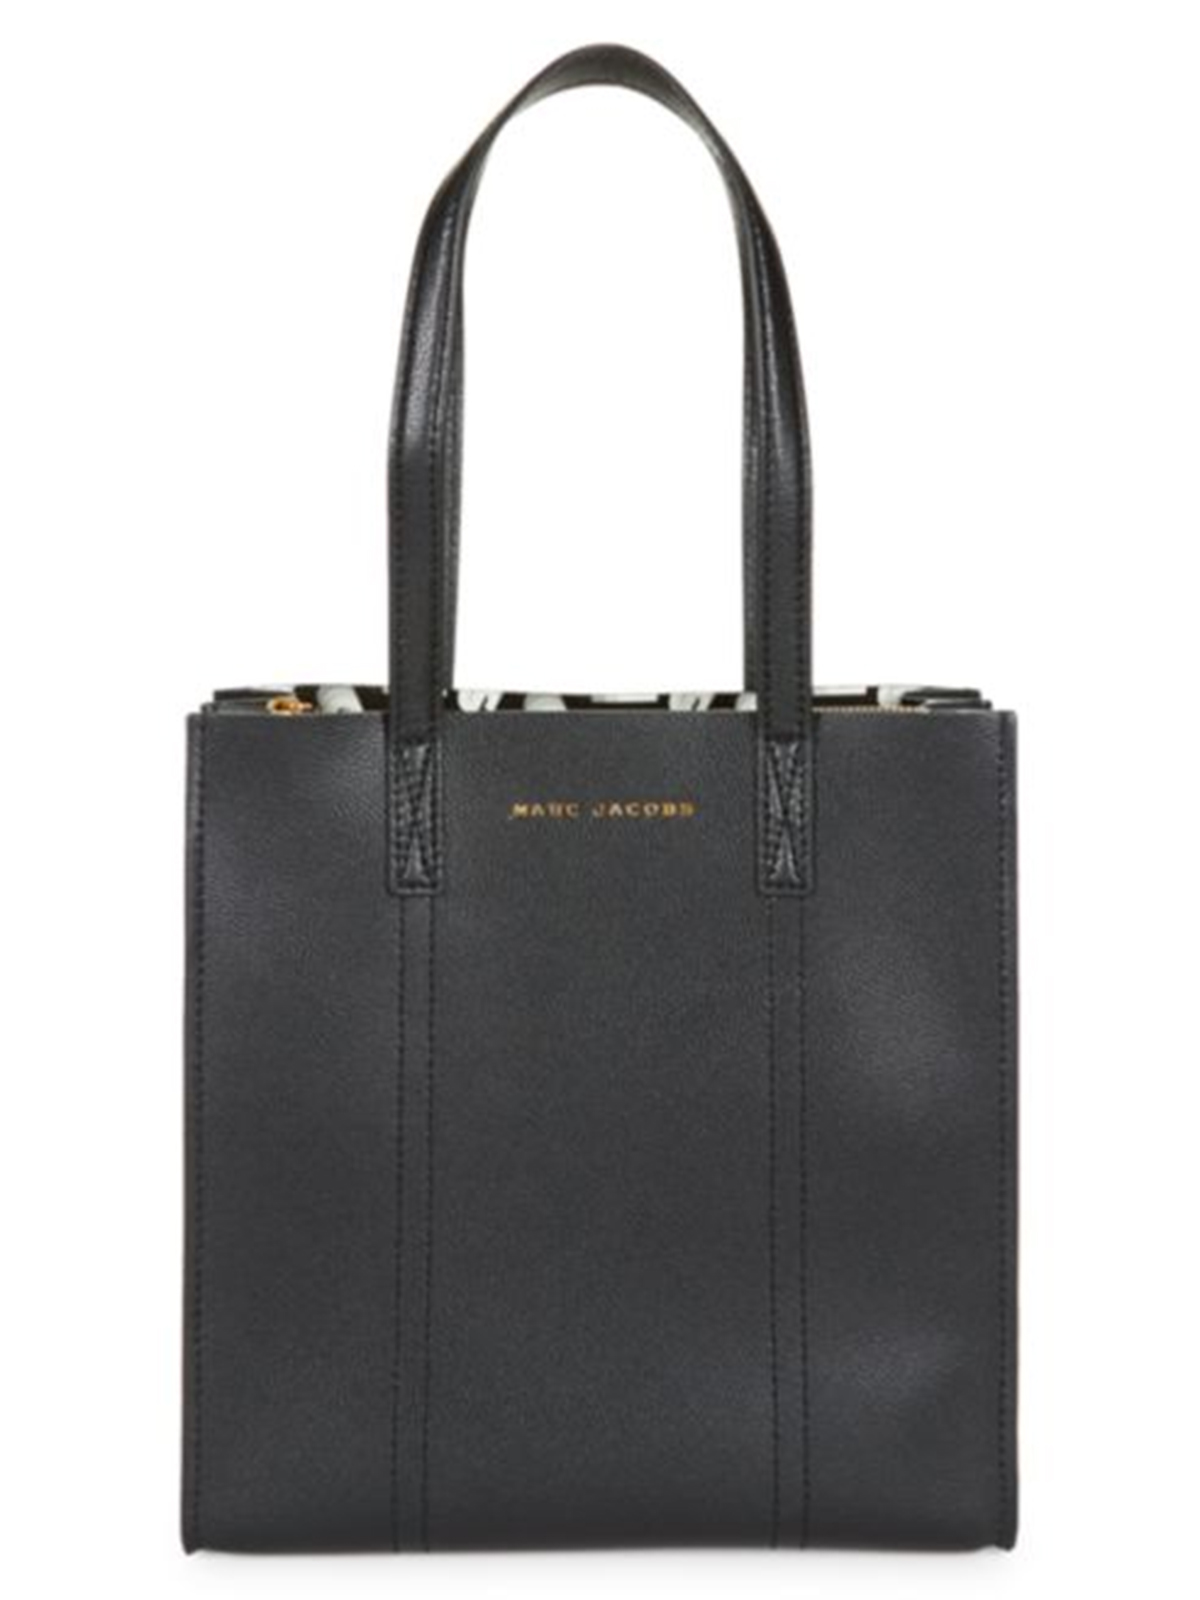 Marc Jacobs Tote Black